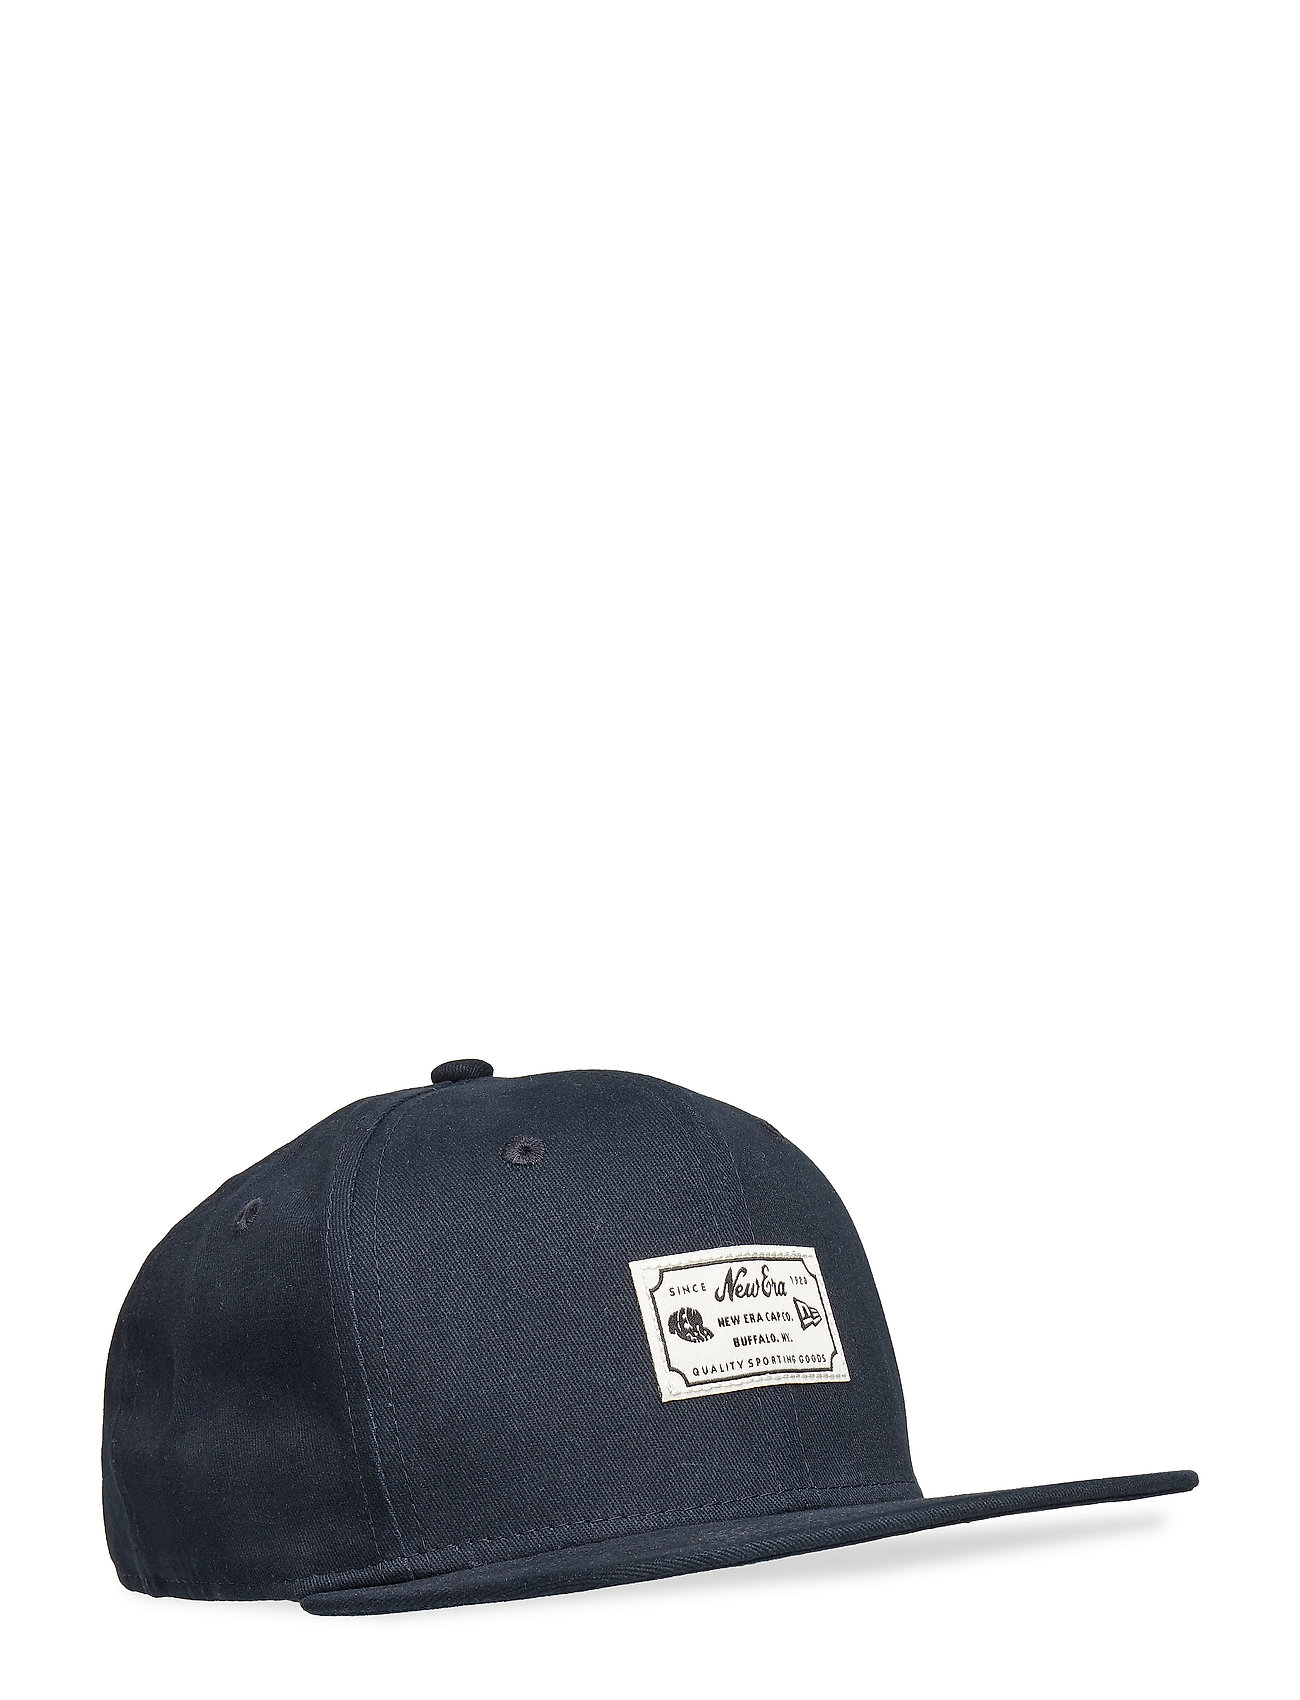 New Era NE SCRIPT PATCH 9FIFTY NE - NVY